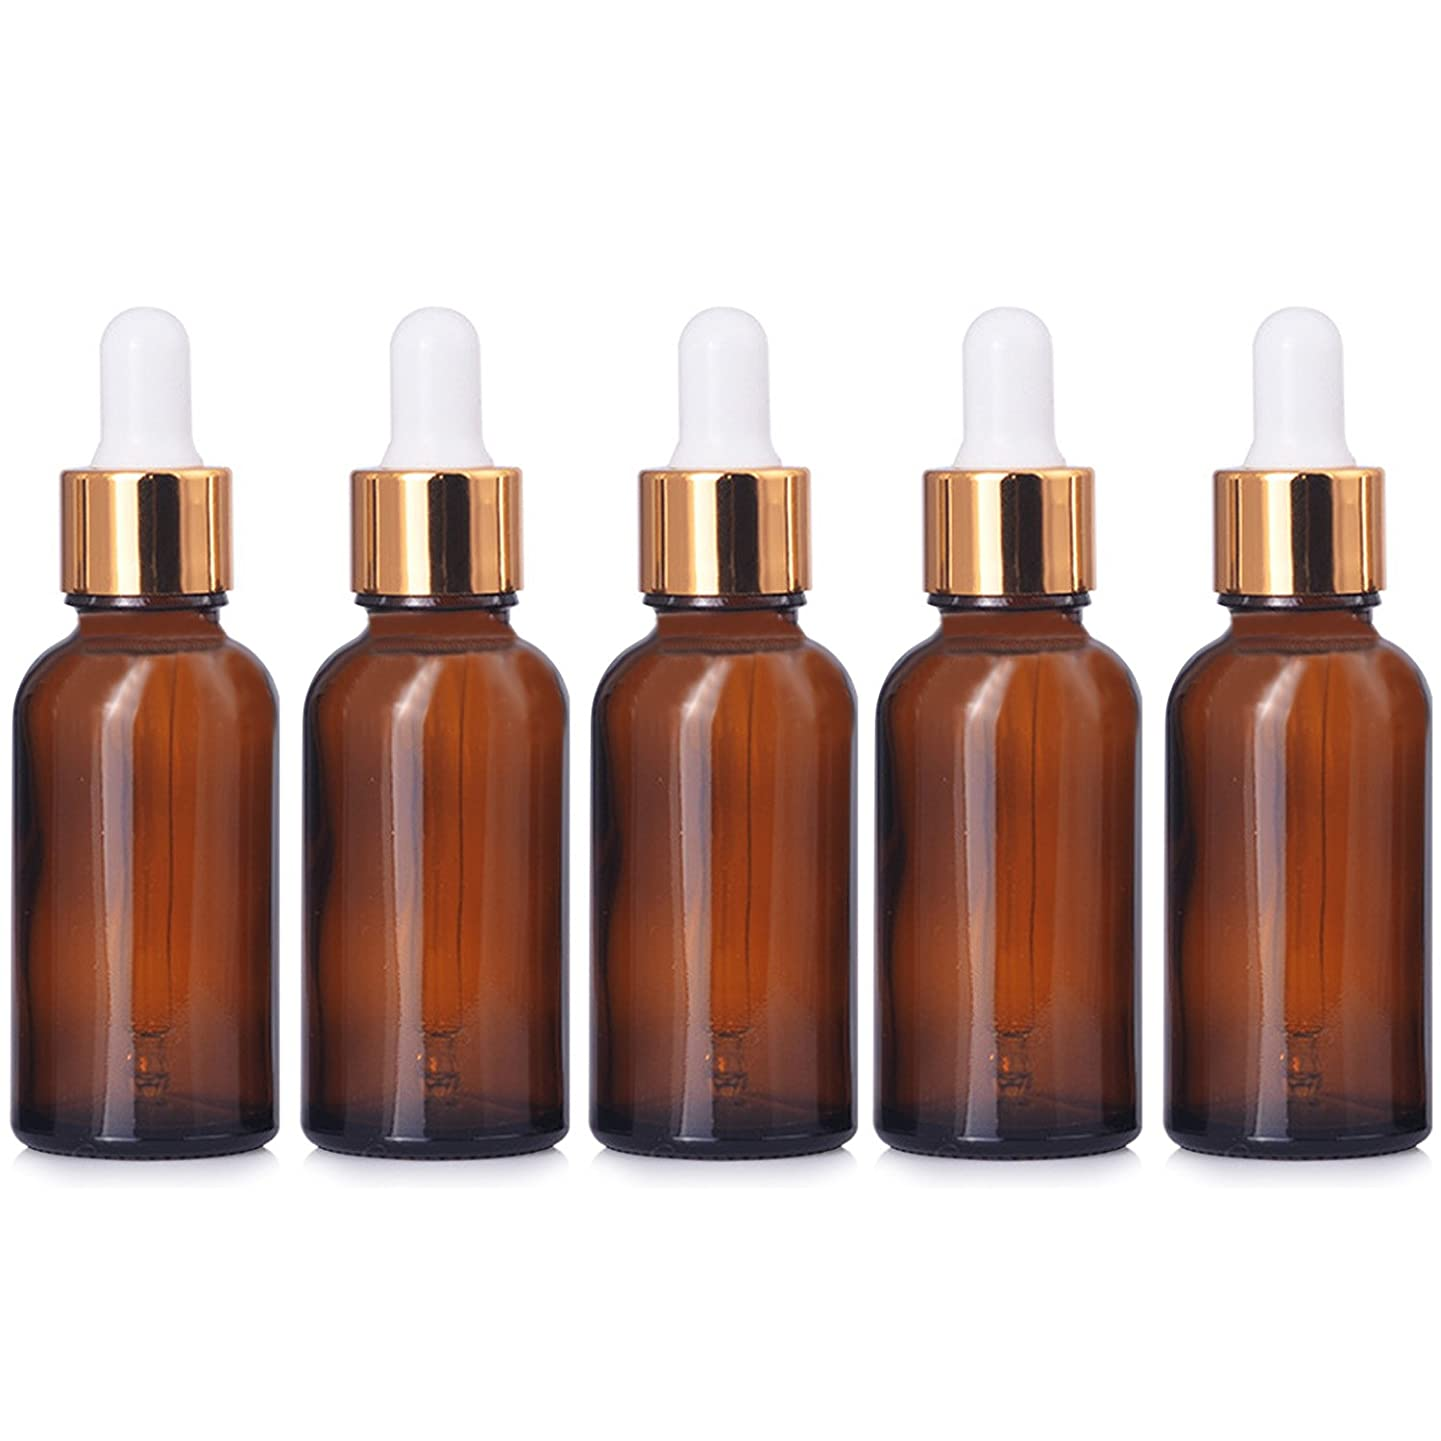 5 PCS Portable Travel 1oz/30ml Dark Brown Empty Refillable Glass Bottles Essential Oil Perfume Liquid Lotion Containers Bottles with Golden Head Droppers